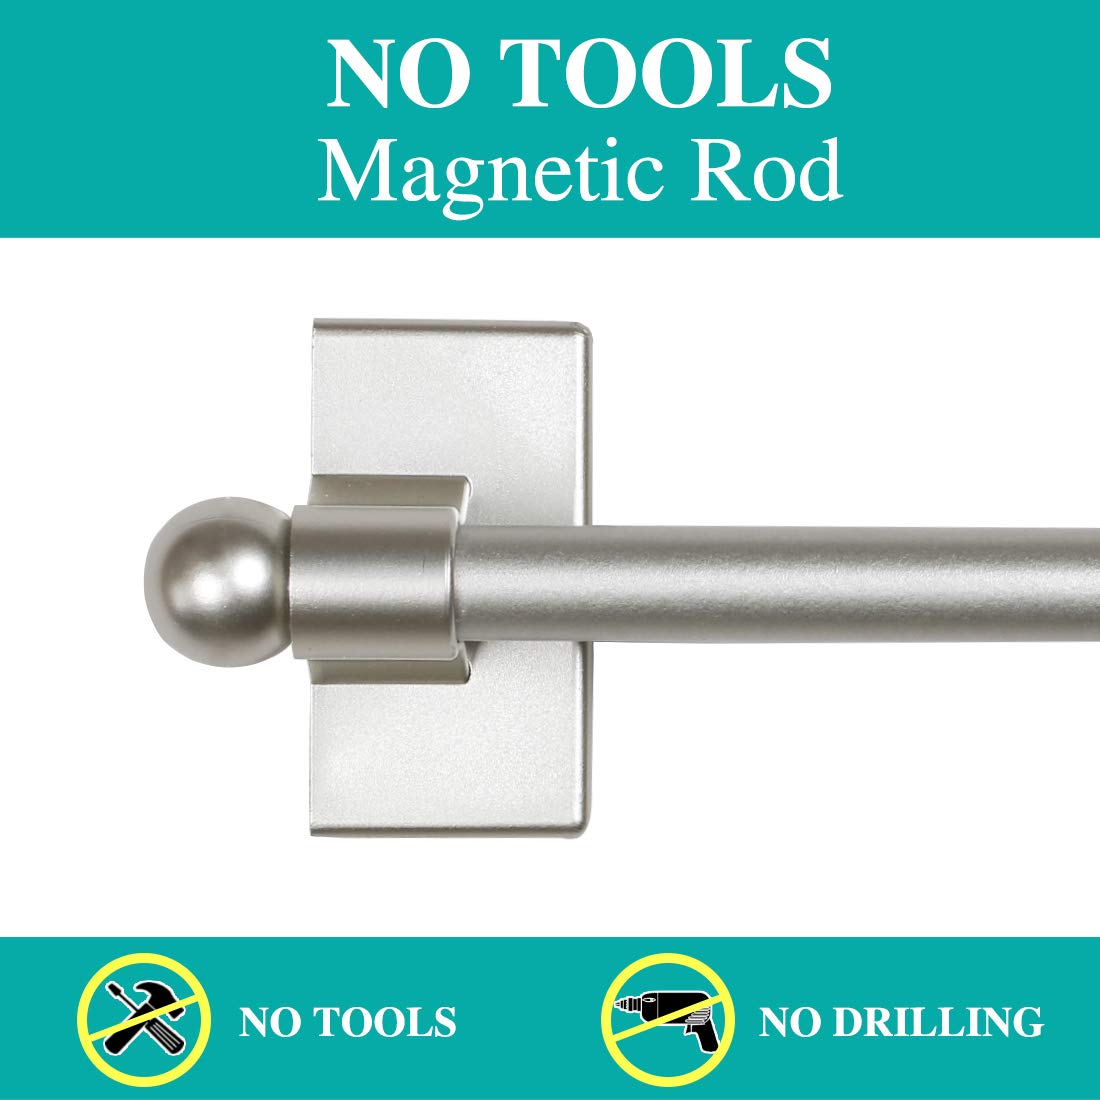 Turquoize 5//8 Multi-Use Versatile Adjustable Appliance Magnetic Rod Extends from 16 inch to 28 inch Magnetic Cafe Curtain Rod Nickel 2 Park